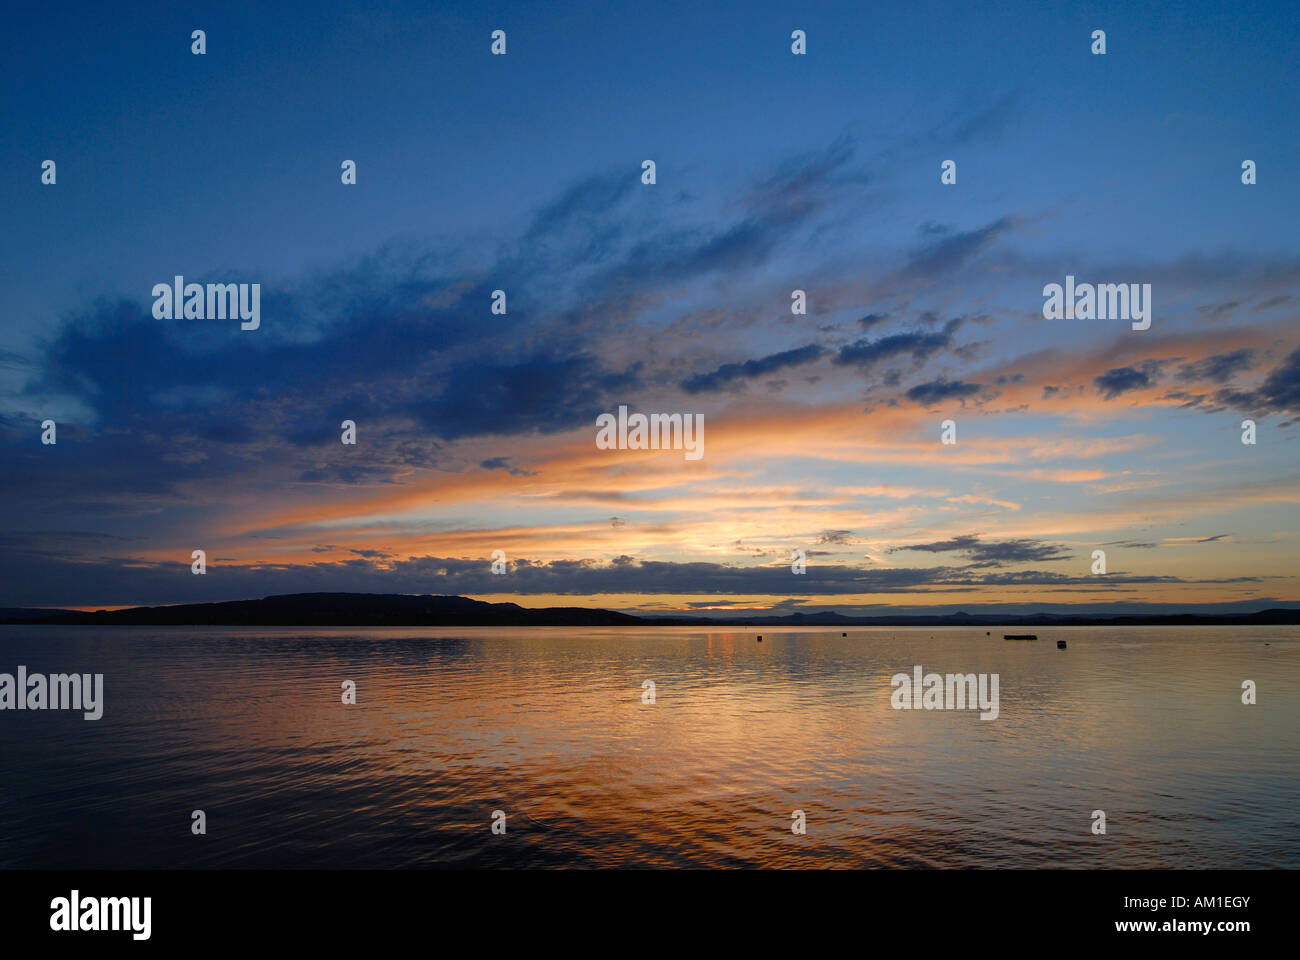 Isle of Reichenau - lighting effect over the lake Constance - Germany, Europe. - Stock Image